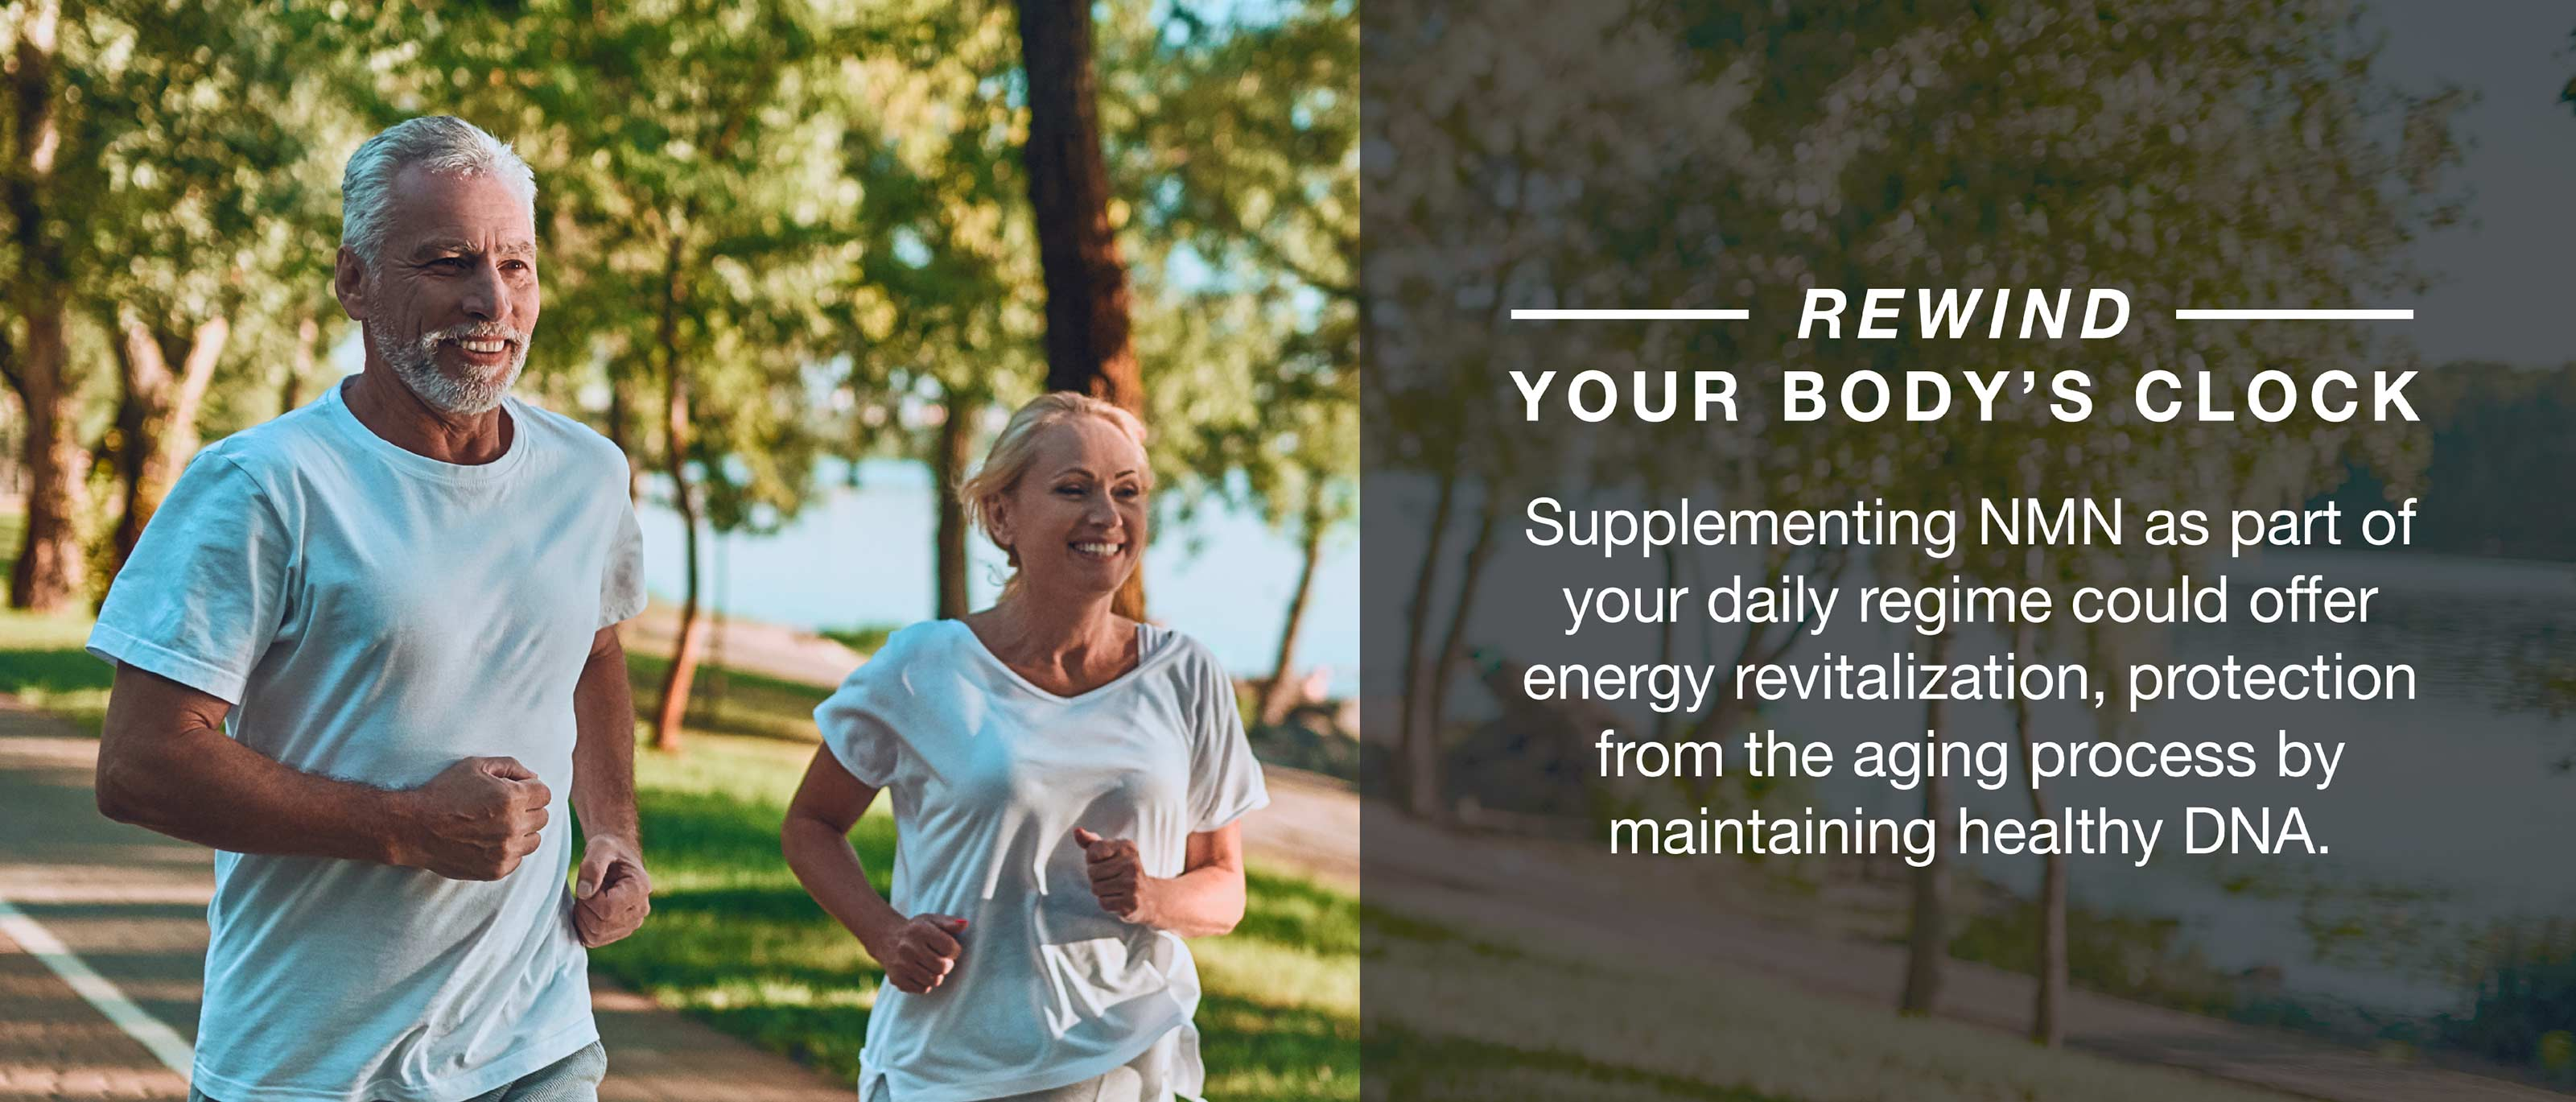 Supplementing NMN with your daily regime can offer energy and protection from aging process by maintaining healthy DNA.